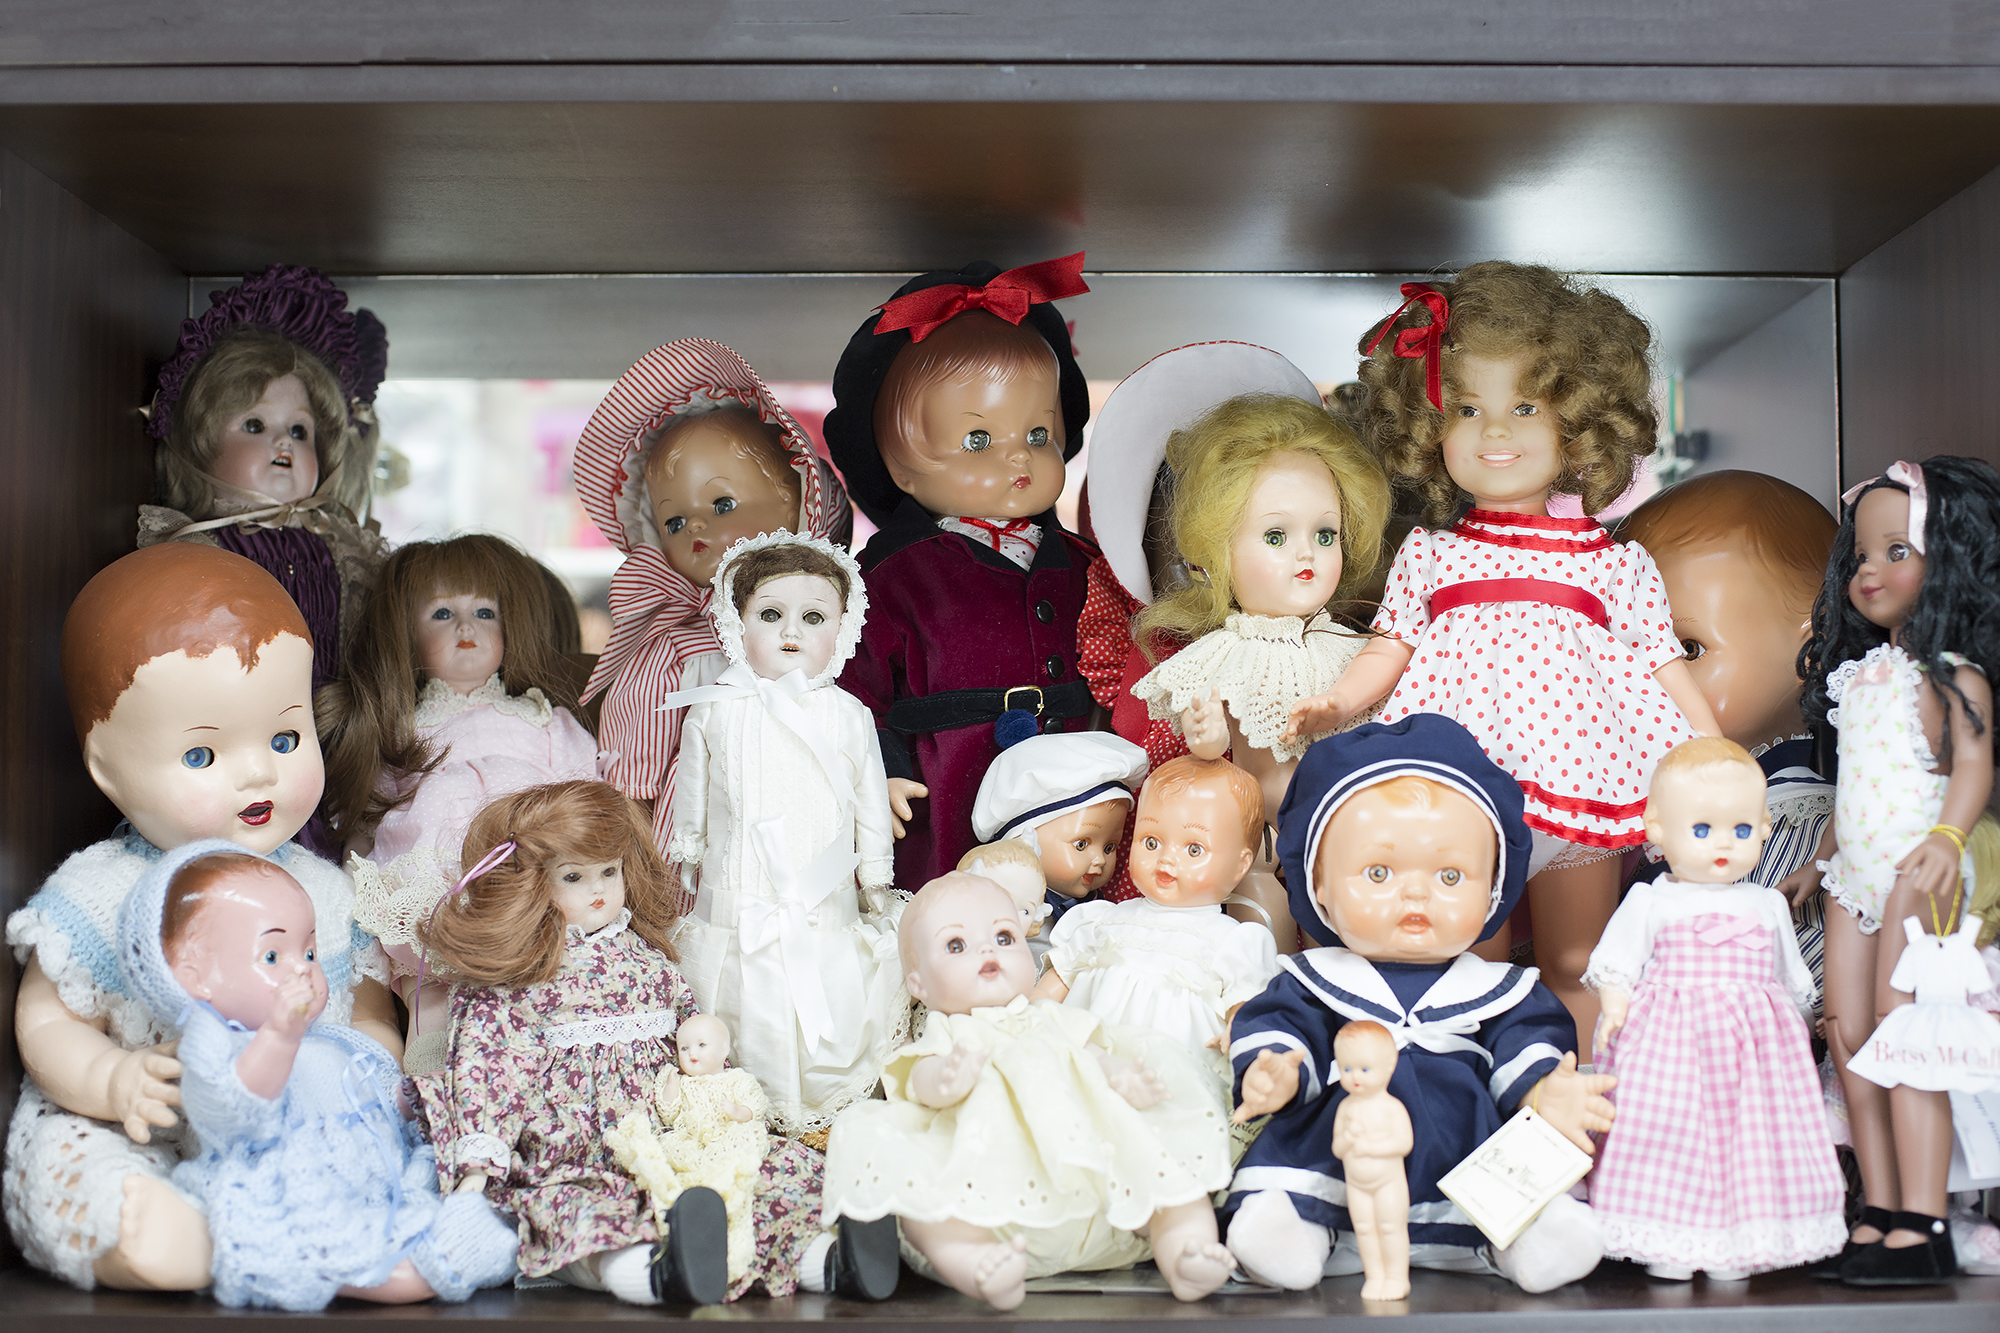 """Doll in white and red spotty dress is """"Shirley Temple"""" by Ideal  Patsy, Betsy McCall  Composition dolls 1950s Spanish Reproduction dolls 1990s Tony doll 1940s"""